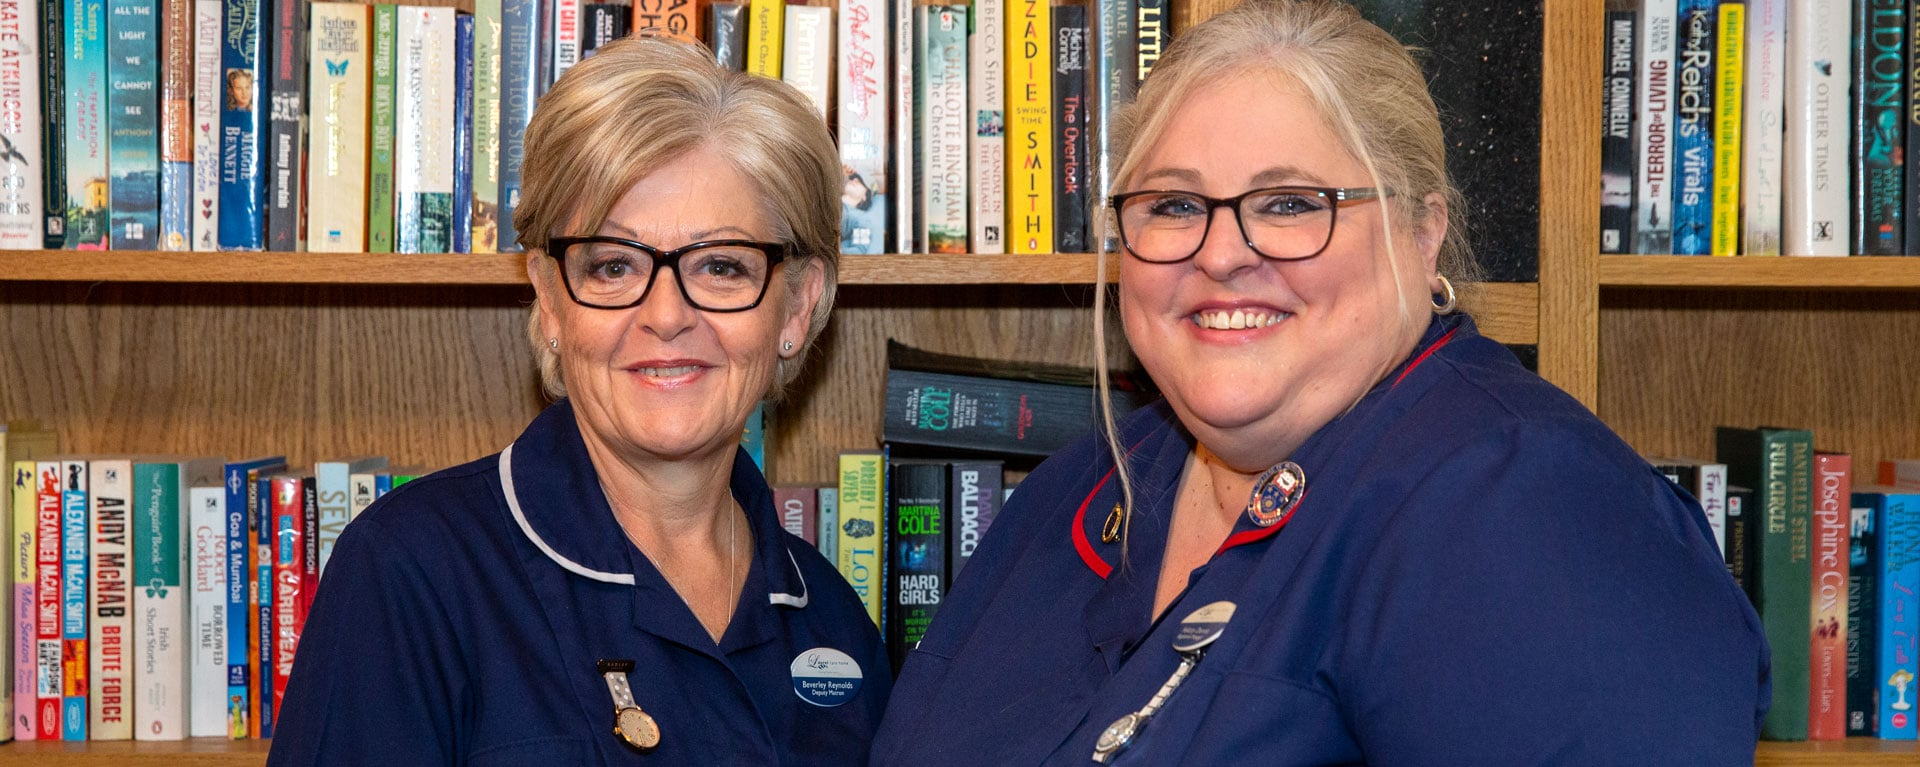 Senior nursing and management staff smiling in the library